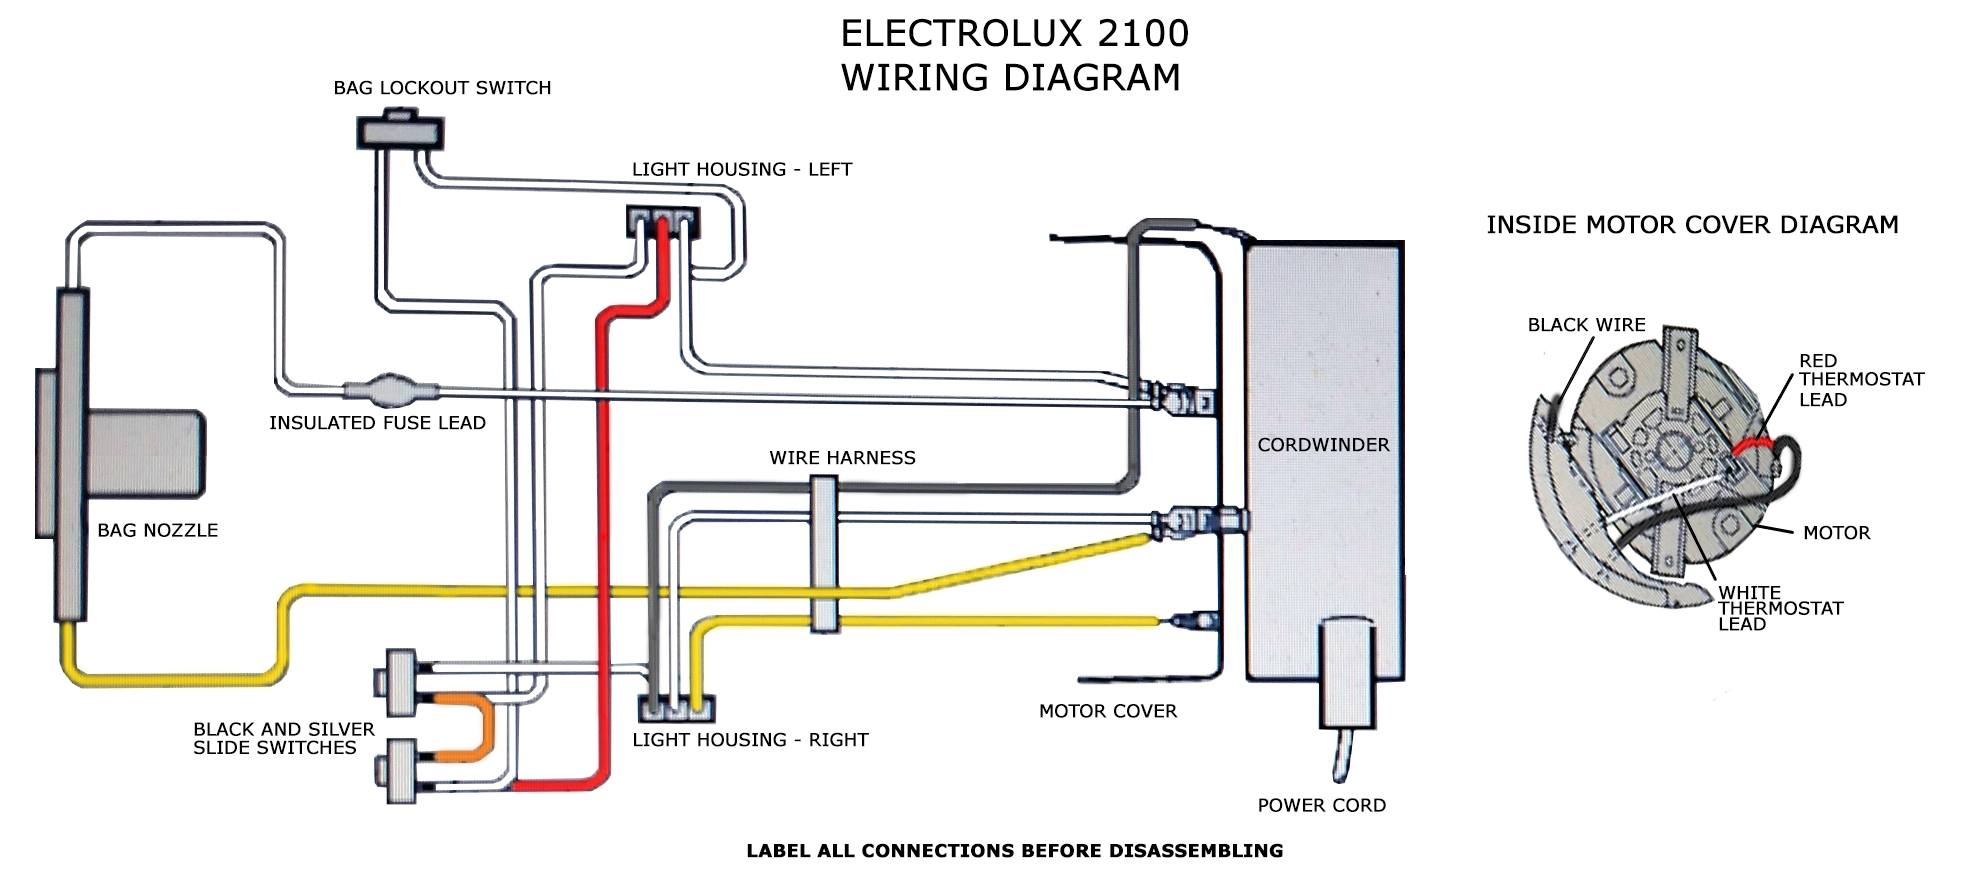 2100 wiring diagram miele vacuum wiring diagram osram wiring diagram \u2022 wiring diagram filter queen wiring diagram at mr168.co